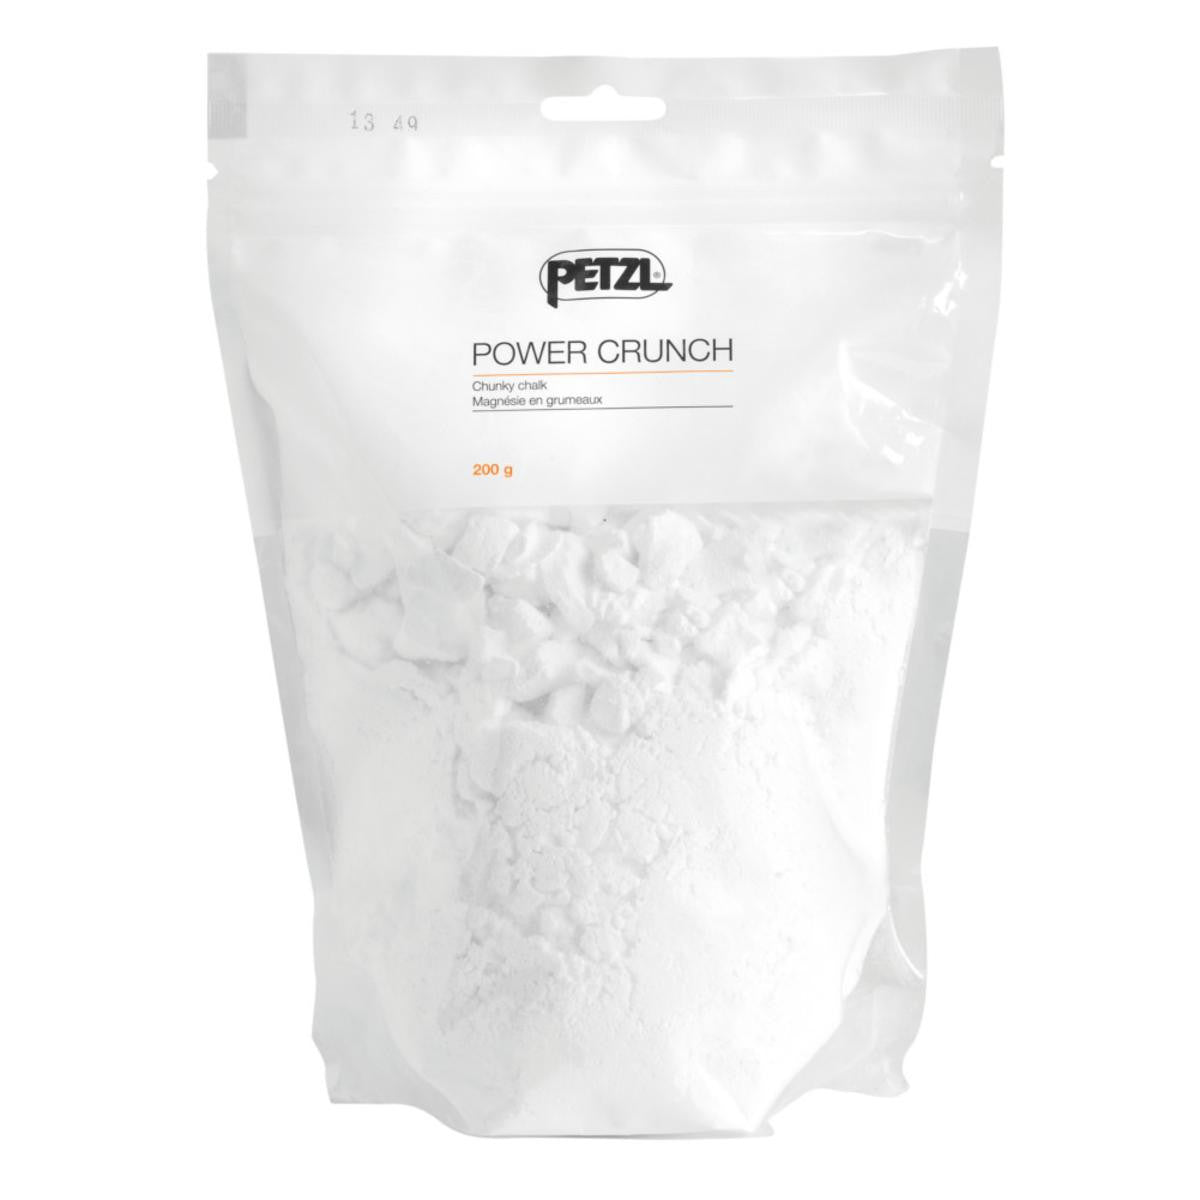 Petzl Power Crunch Chunky Chalk 200g